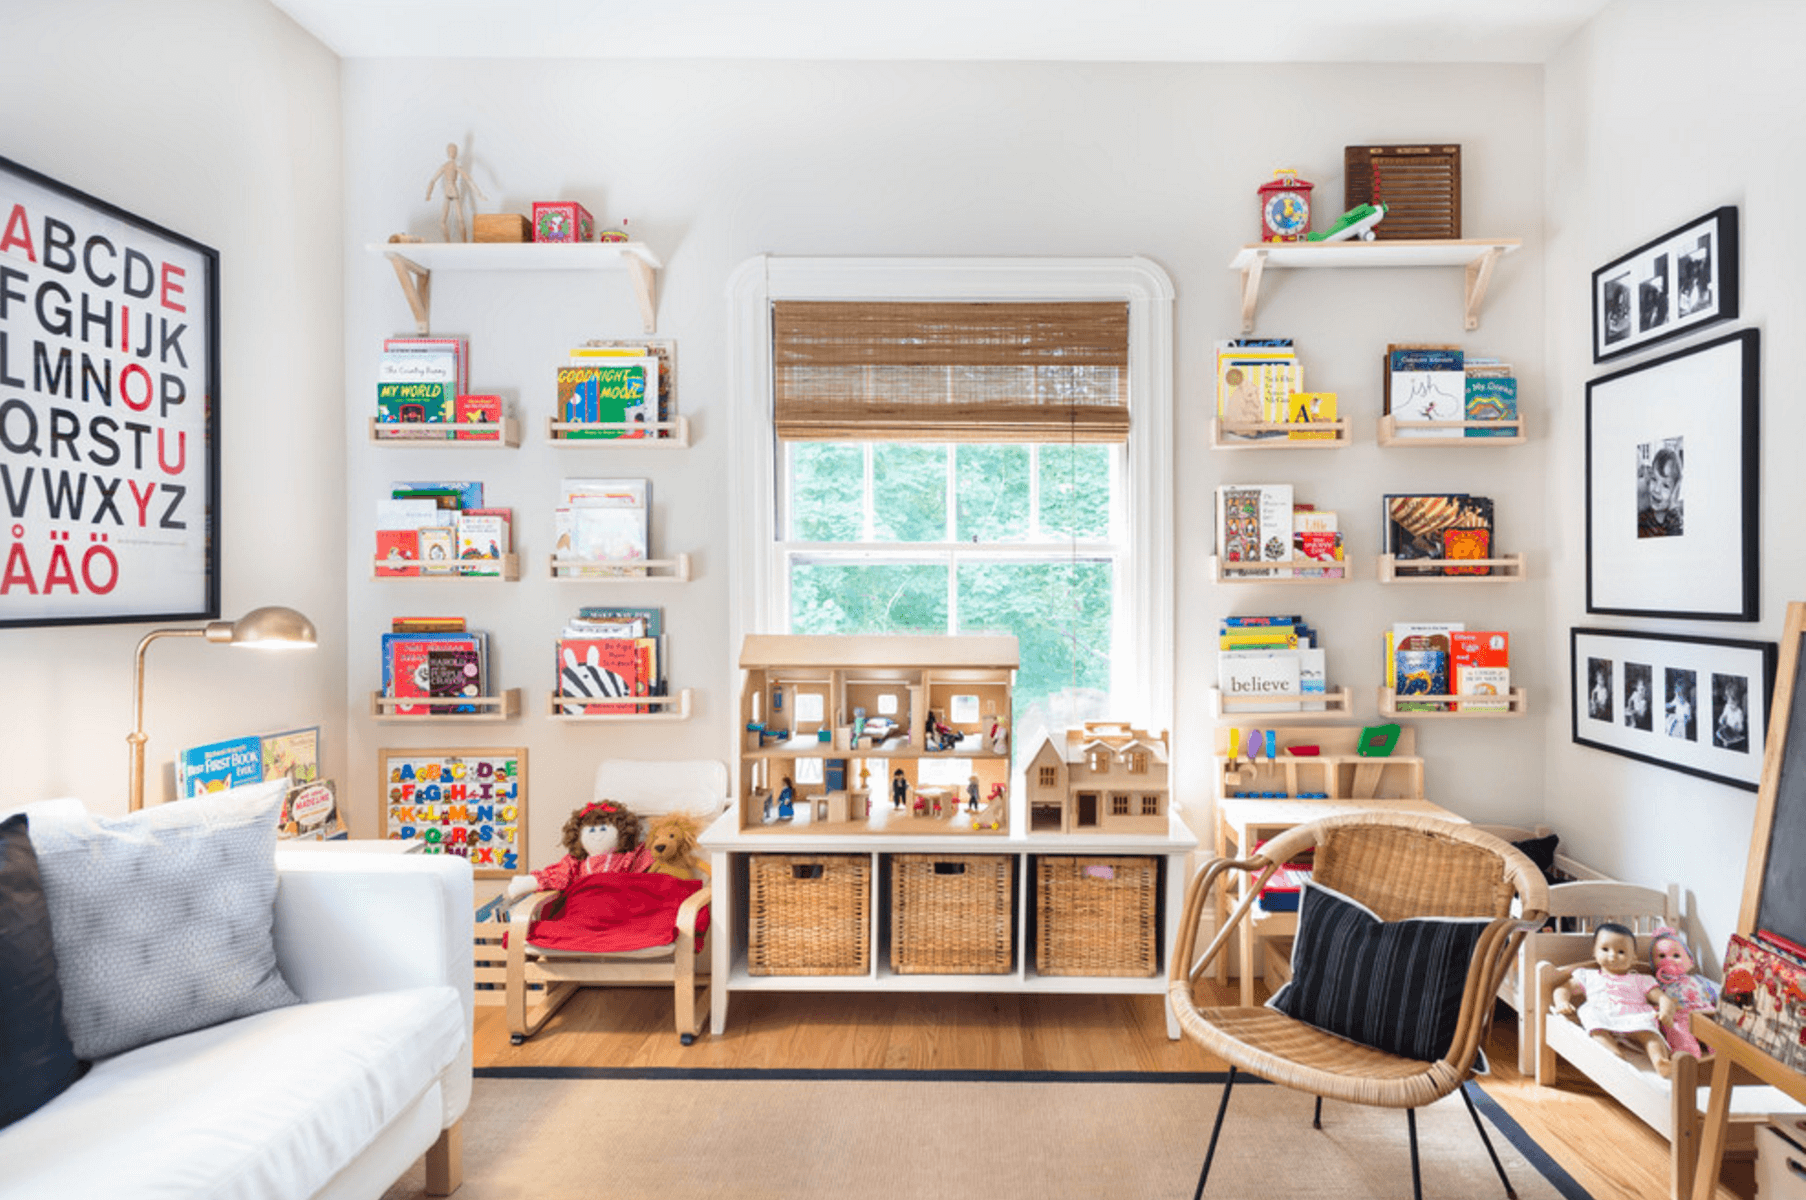 Superb 28 Ideas For Adding Color To A Kids Room Freshome Com Interior Design Ideas Skatsoteloinfo